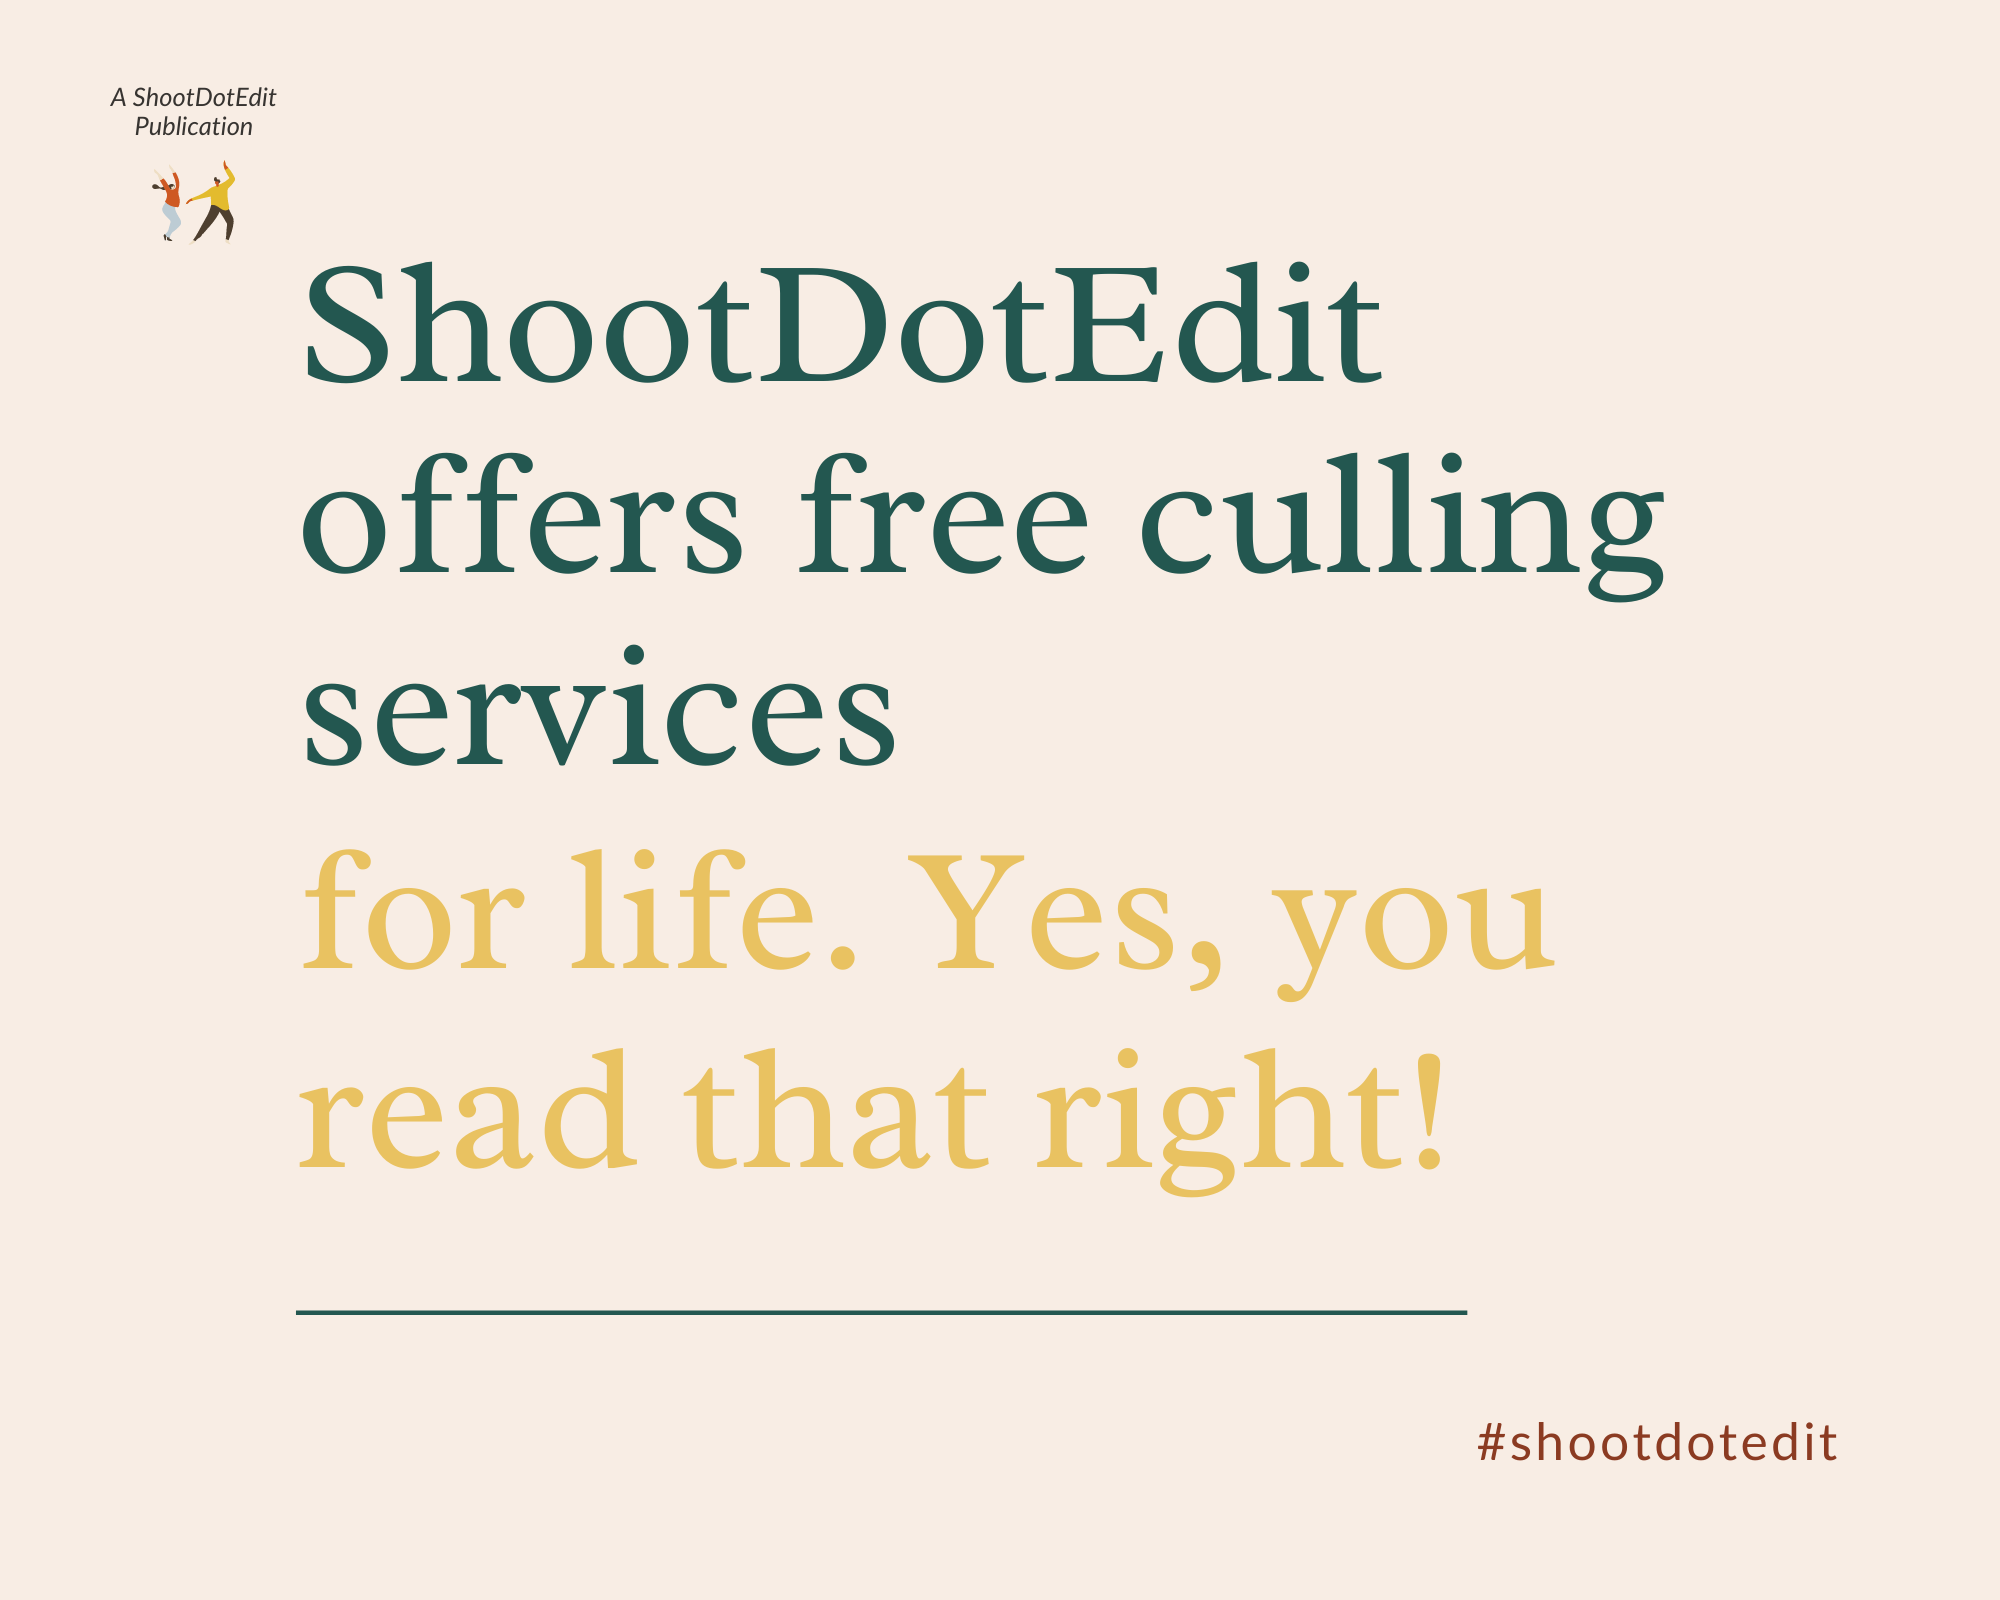 Infographic stating ShootDotEdit offers free culling services for life. Yes, you read that right